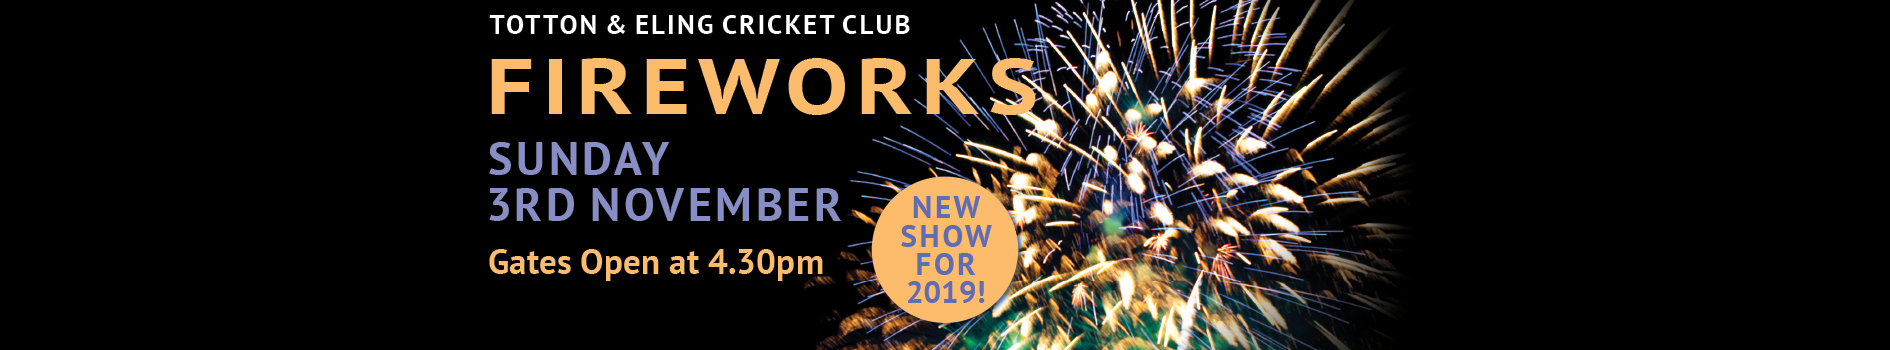 Fireworks at Totton & Eling CC Events